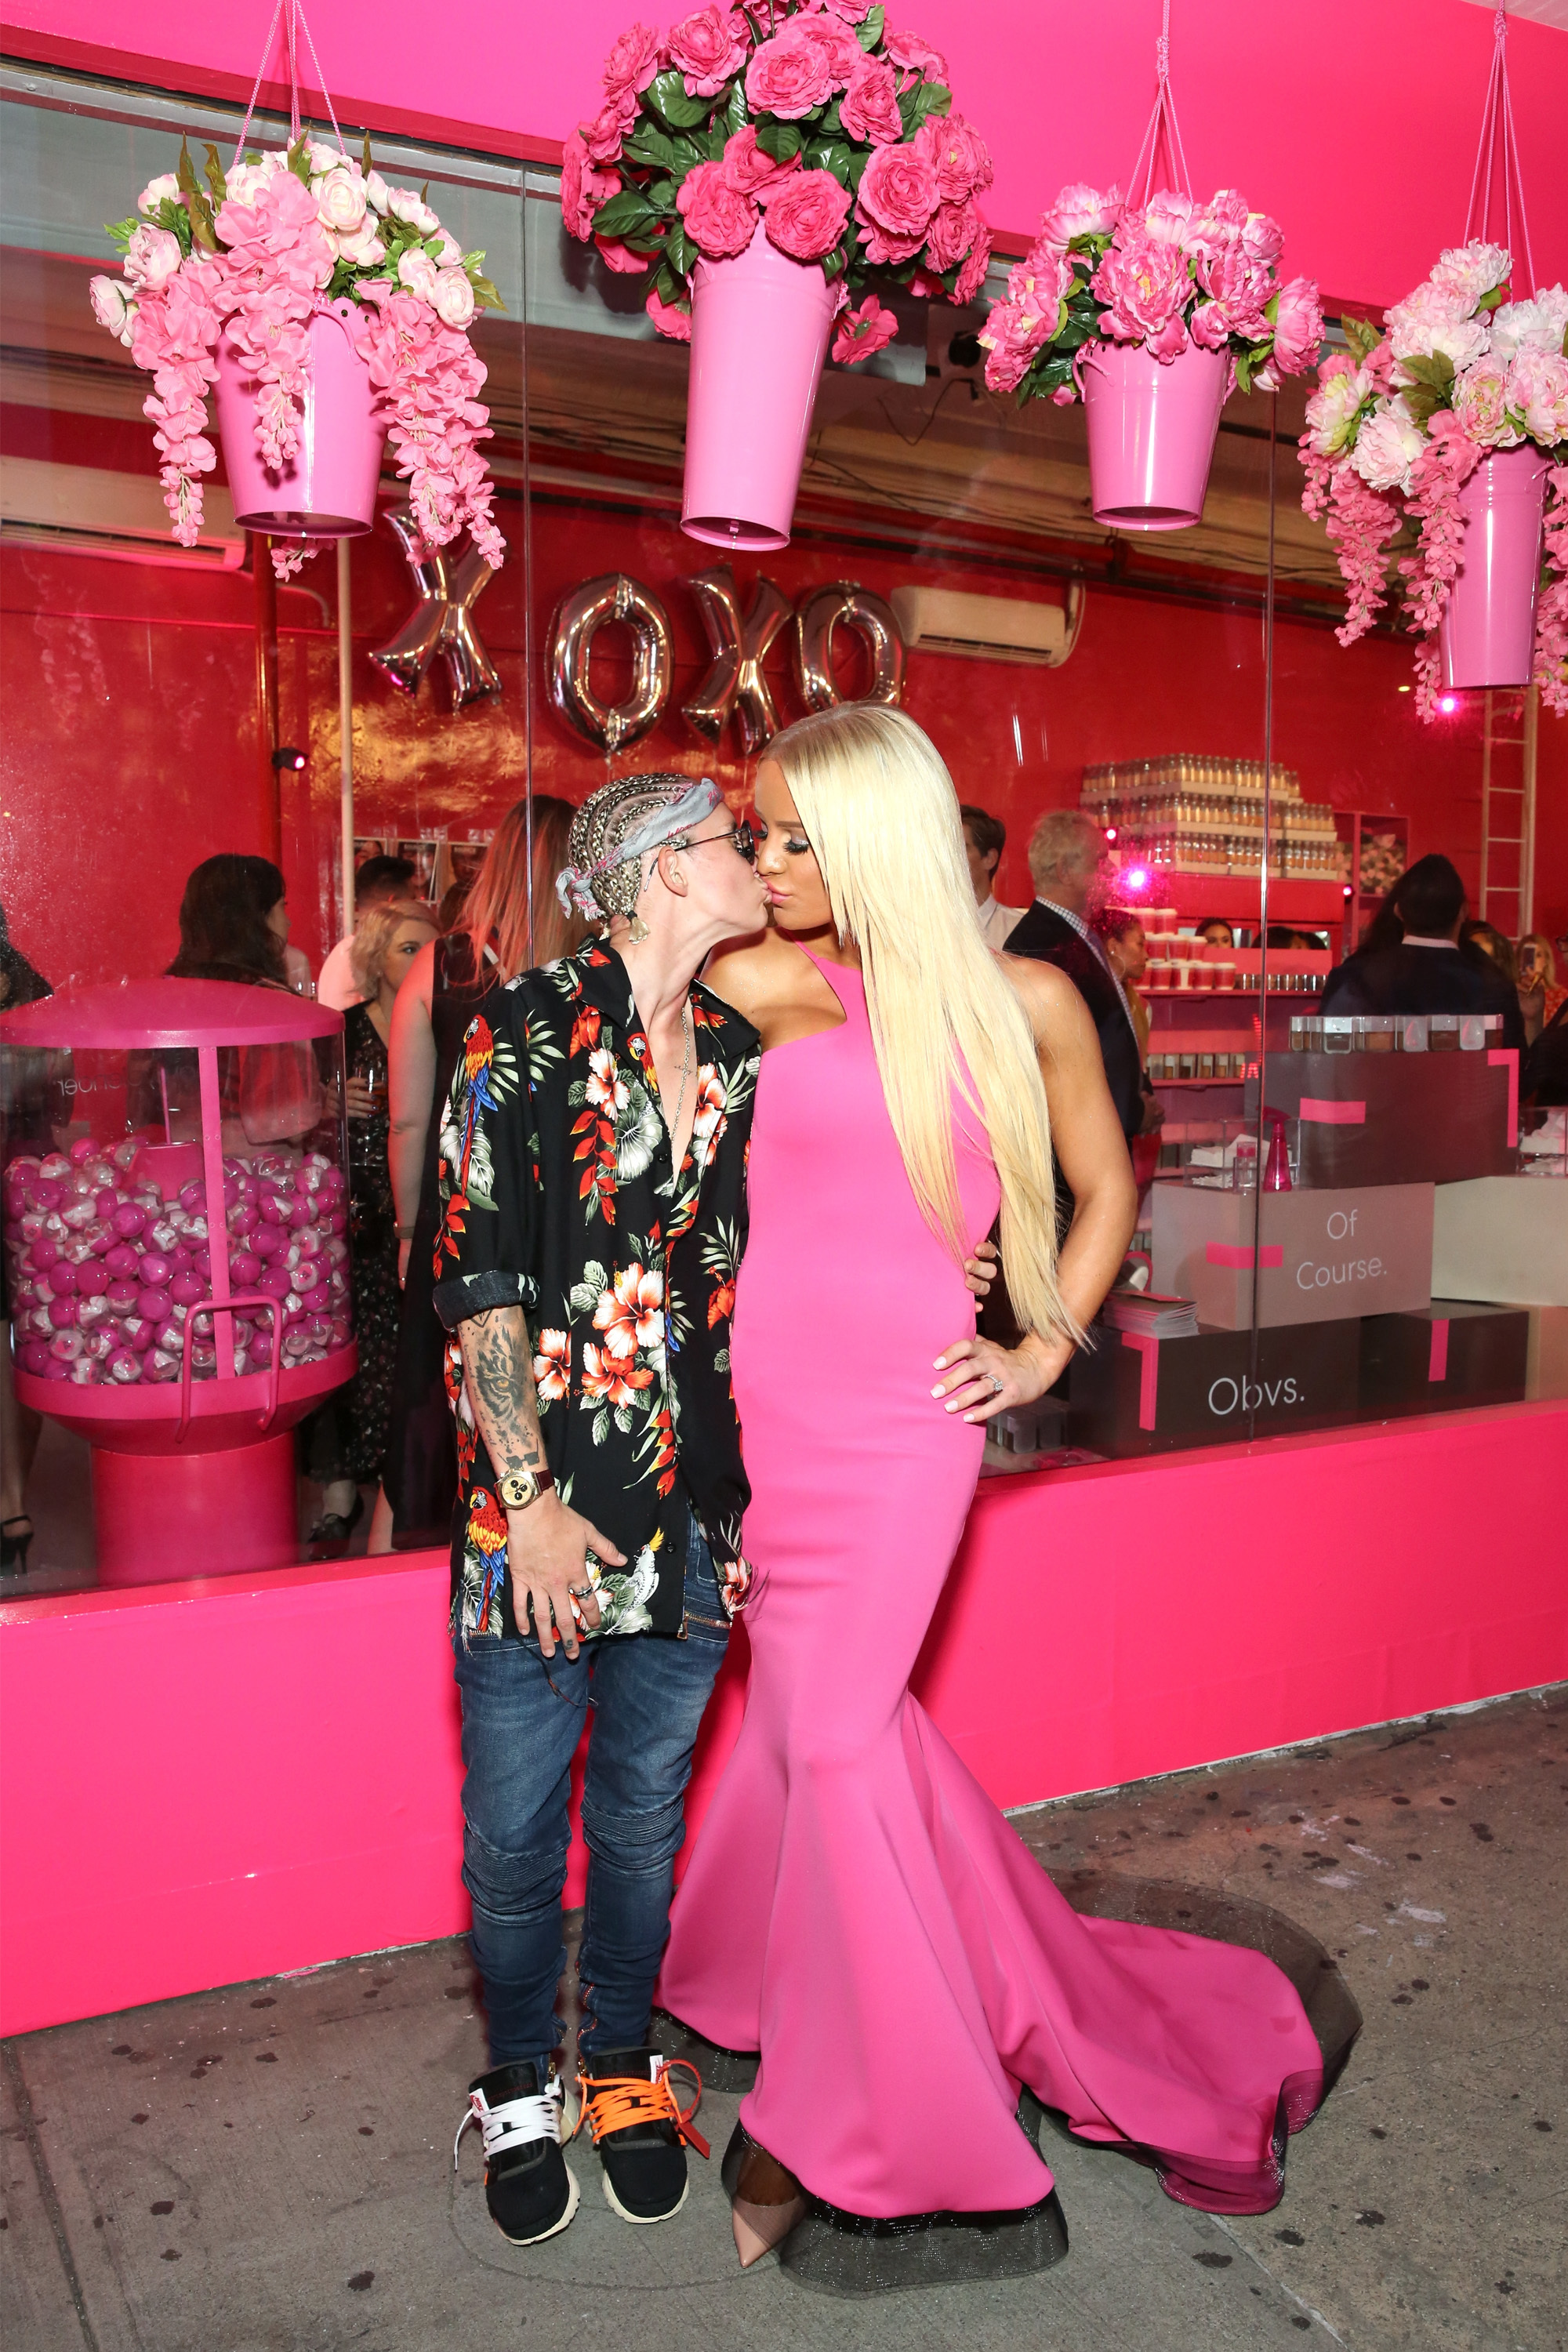 Oil heiress Nats Getty and fiancée Gigi Gorgeous got cutesy while attending an event in New York City on July 24, 2018.